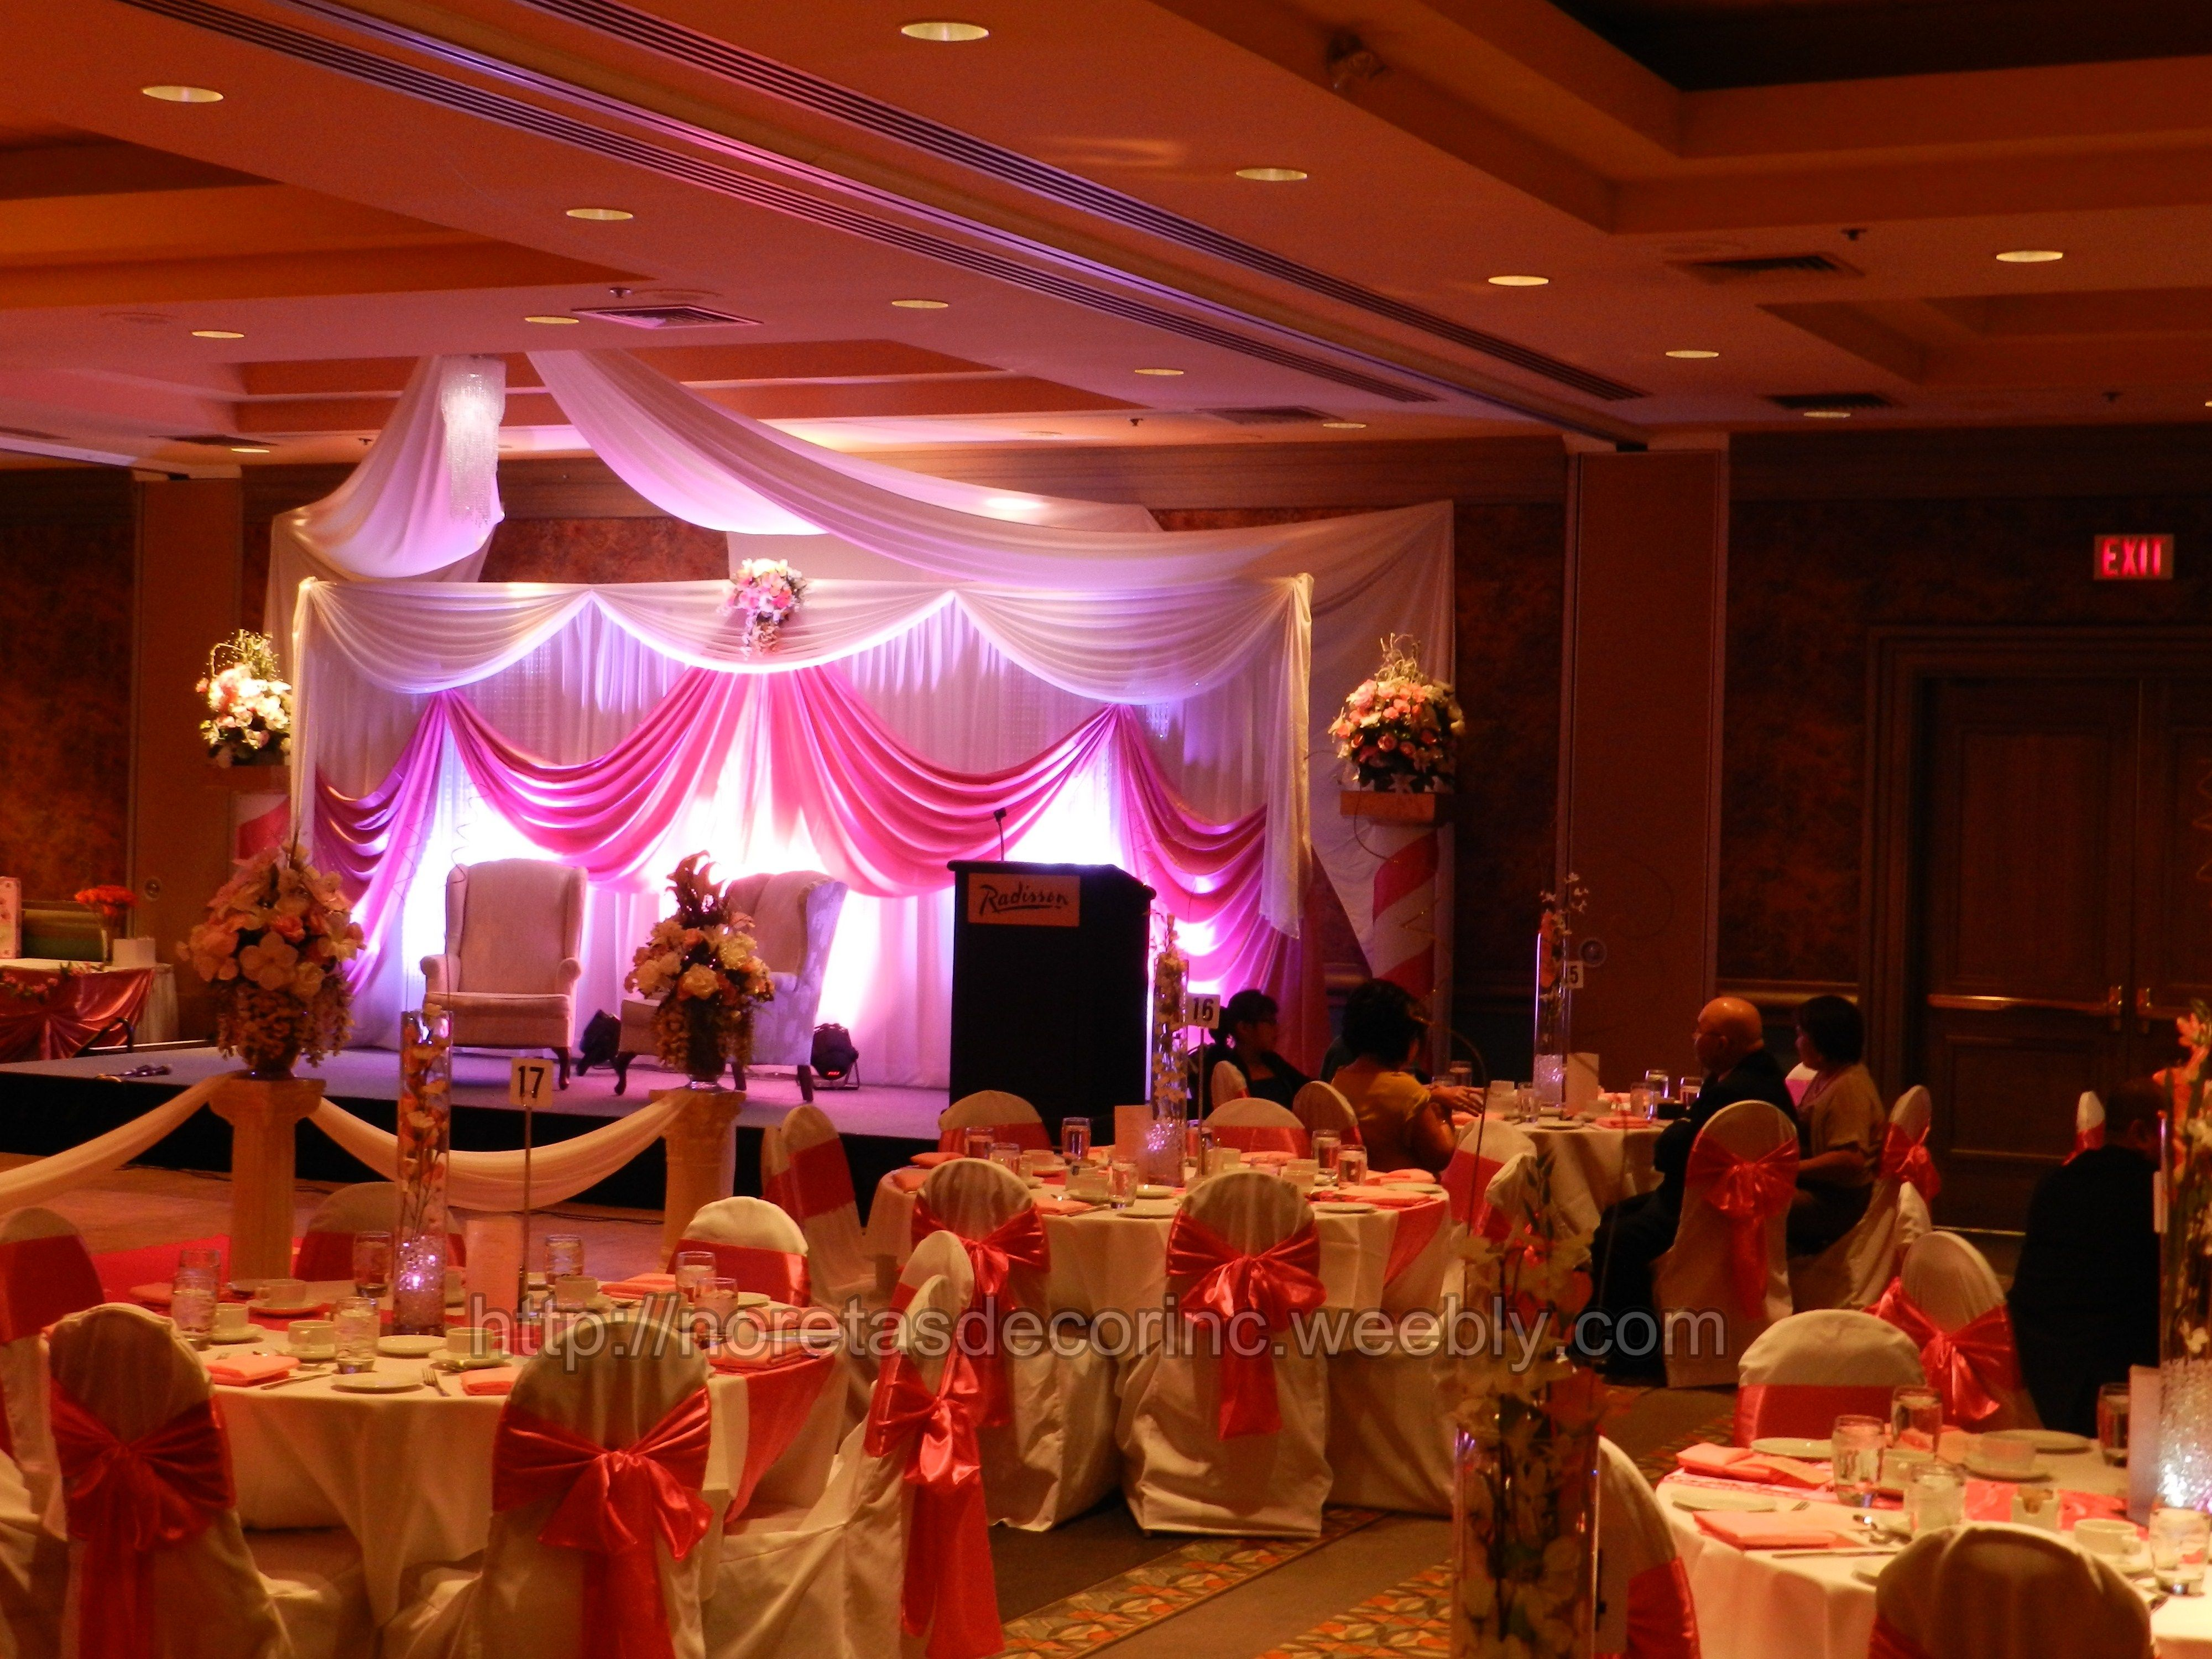 Wedding decoration banquet hall decoration http for Hall decoration